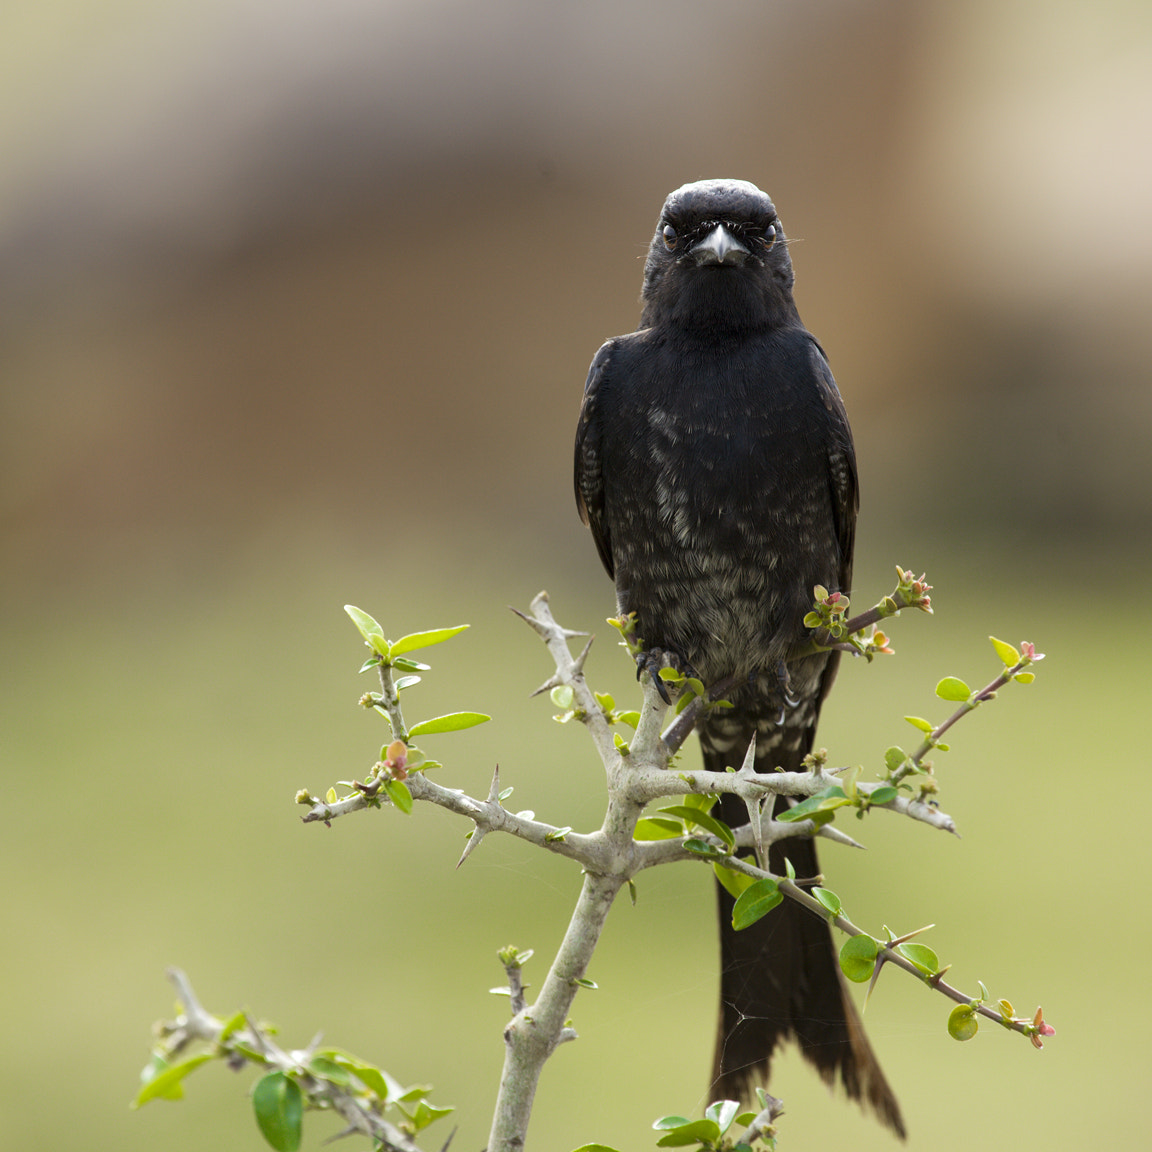 Photograph The Aggressive Black Drongo! by Vinoth Chandar on 500px